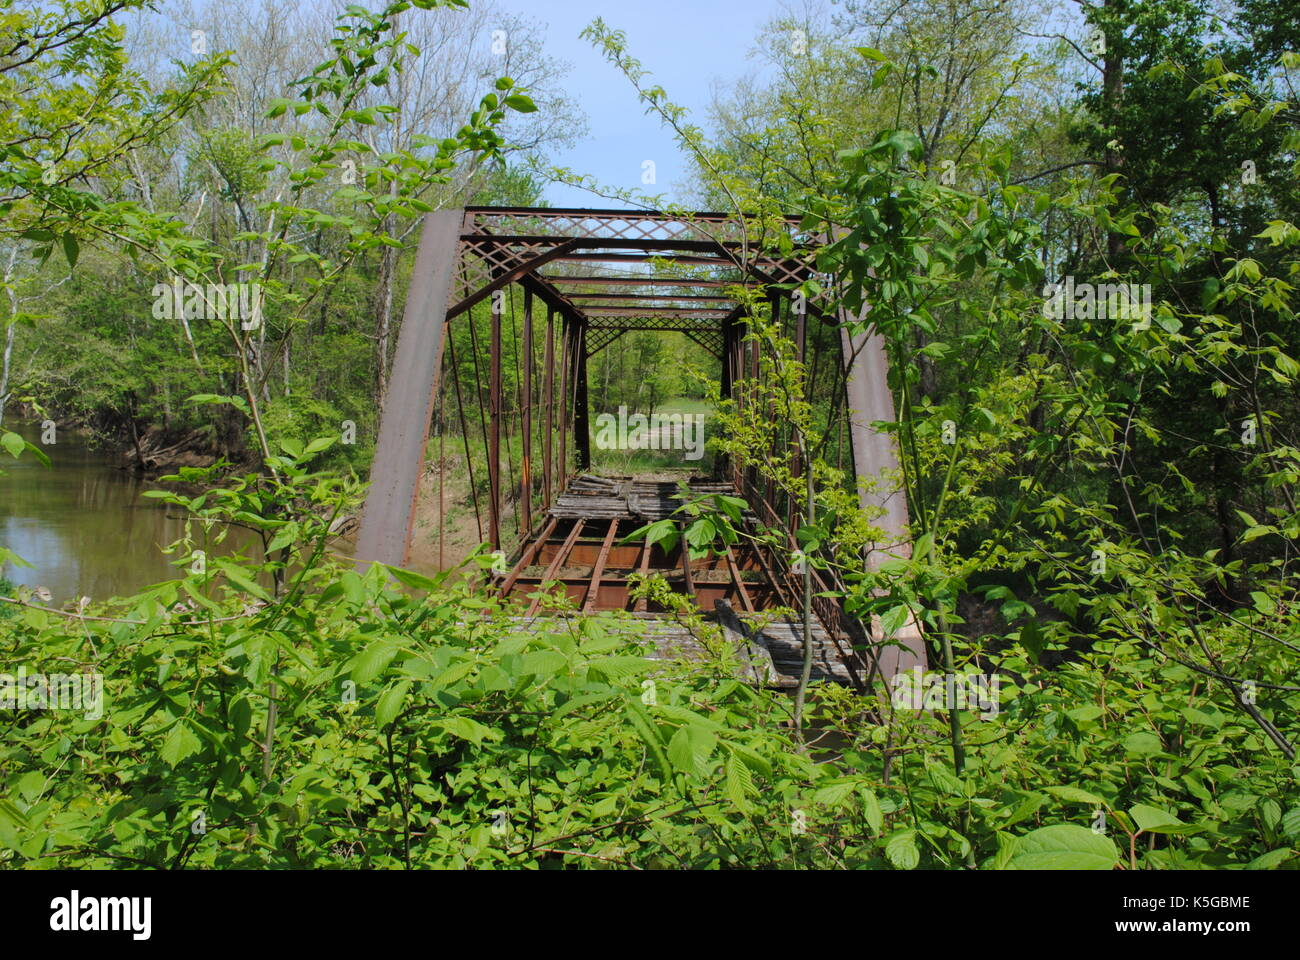 Iron bridge - Stock Image